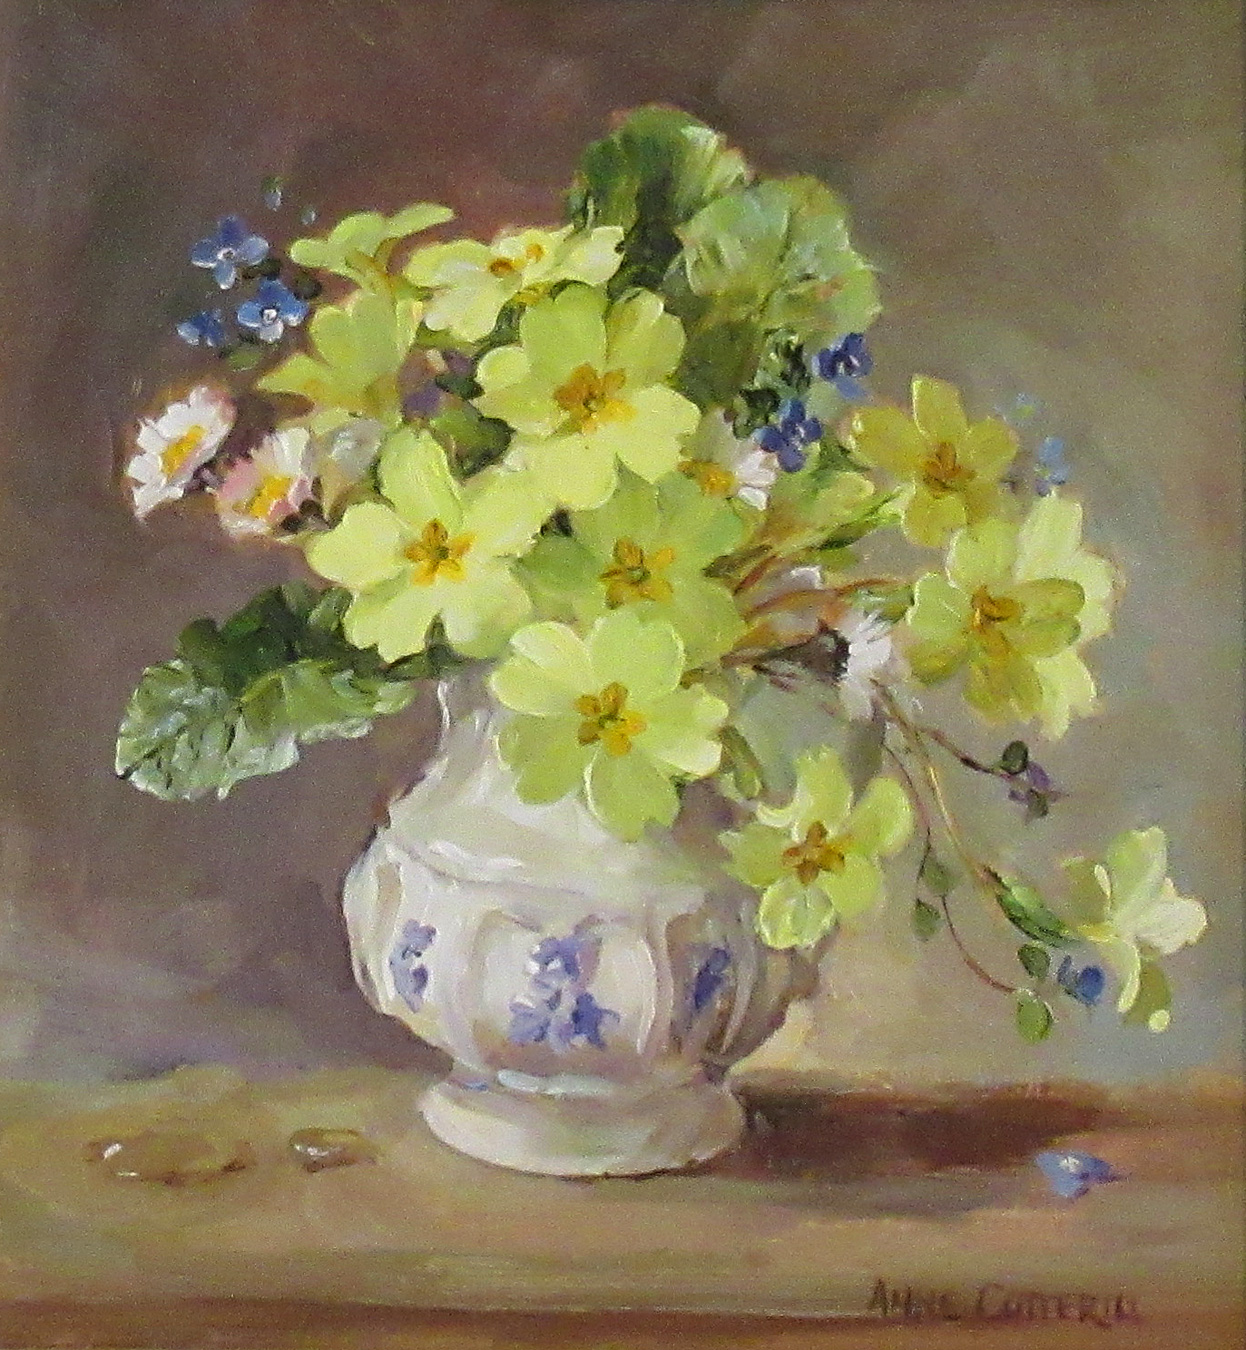 Primroses, Violets and Daisies by  Anne Cotterill (1933-2010)